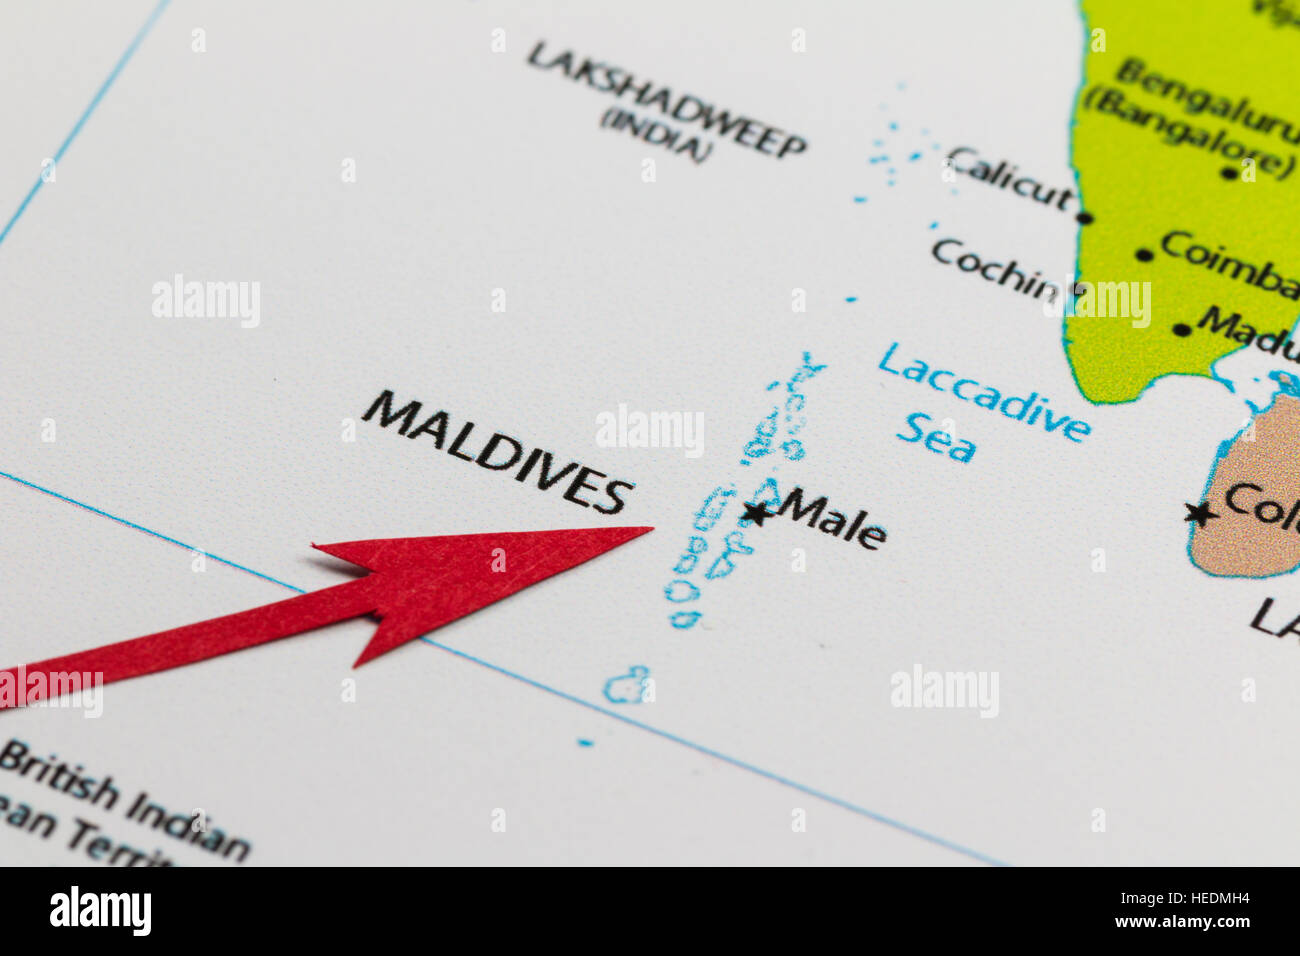 Red arrow pointing Maledives on the map of Asia continent - Stock Image